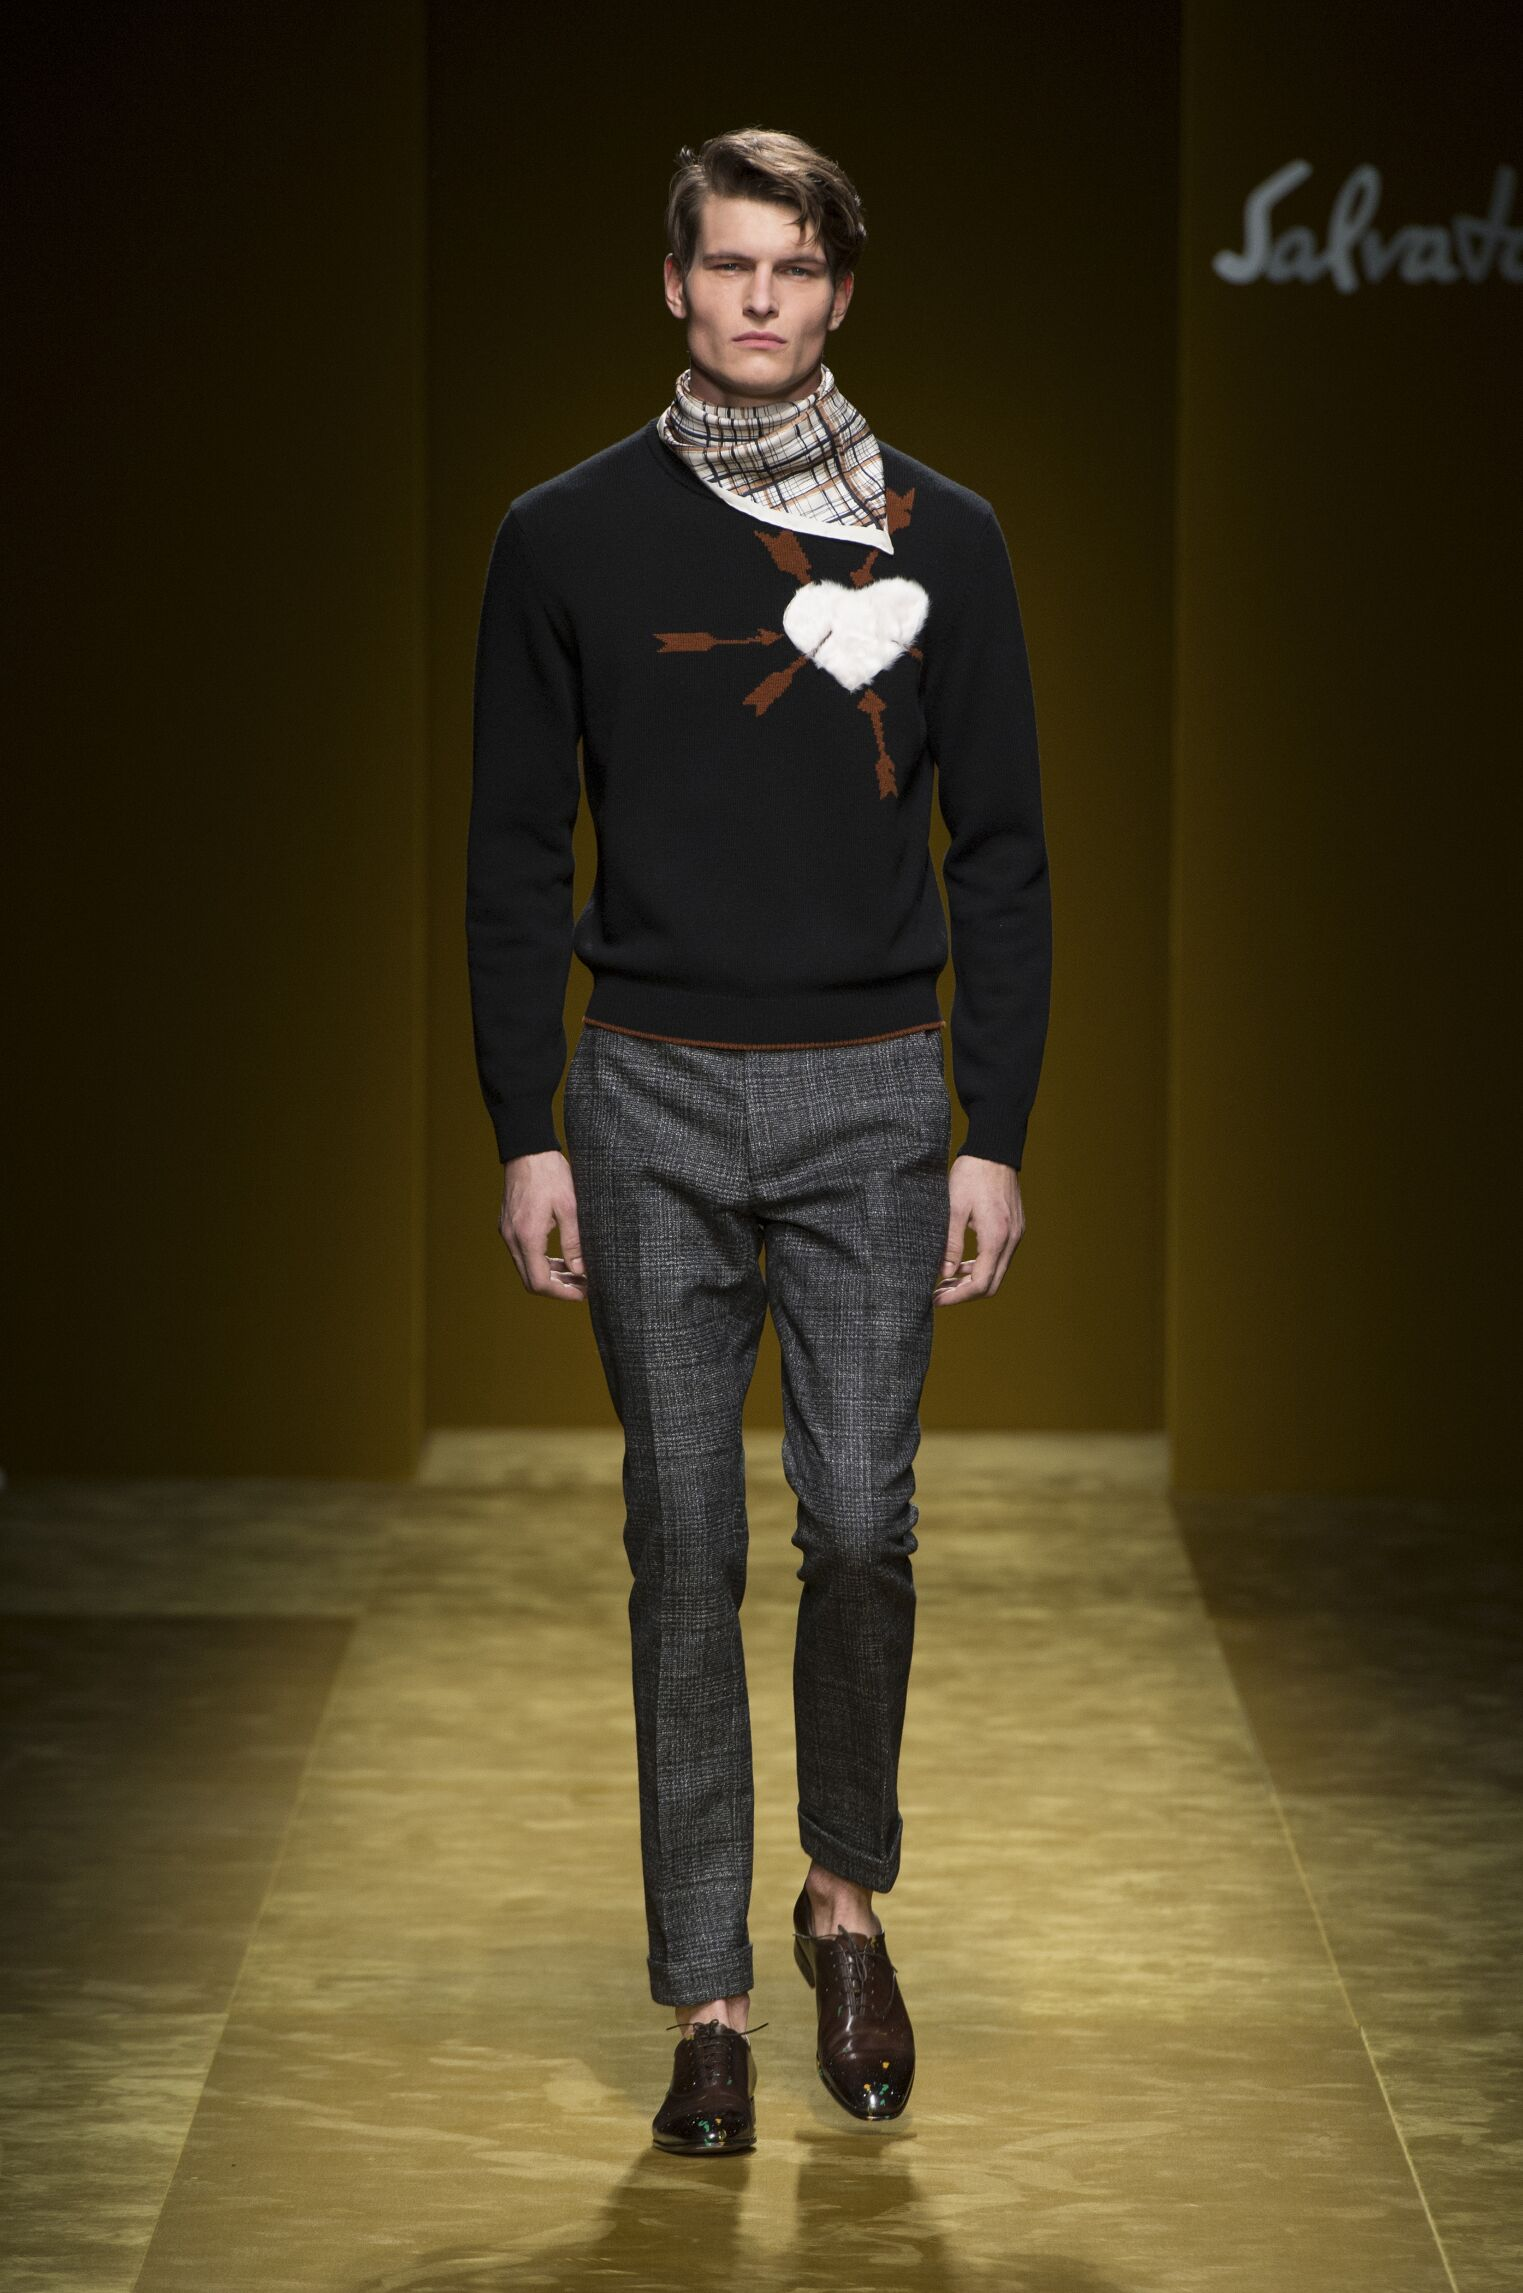 FW 2016 Fashion Show Salvatore Ferragamo